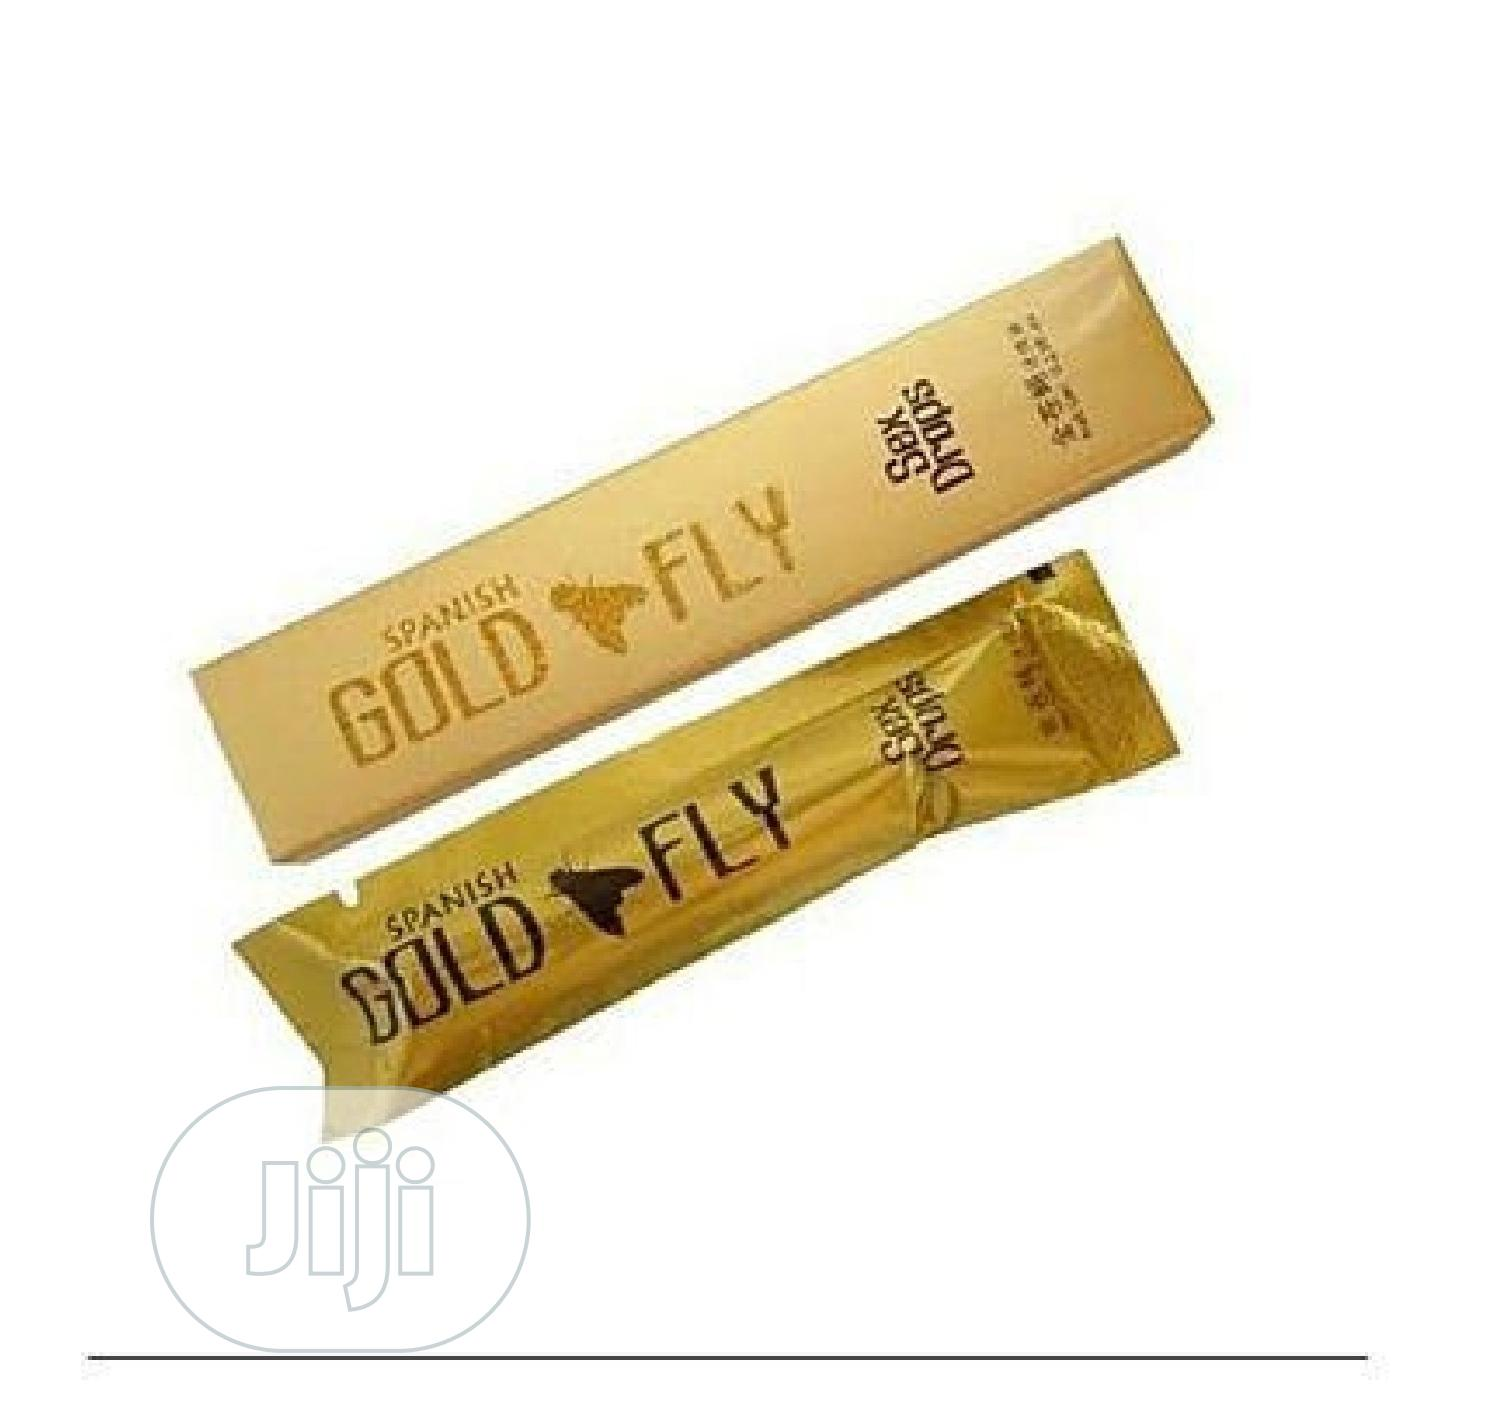 Archive: Spanish Gold Fly Female Sexual Libido Enhancer 12pcs